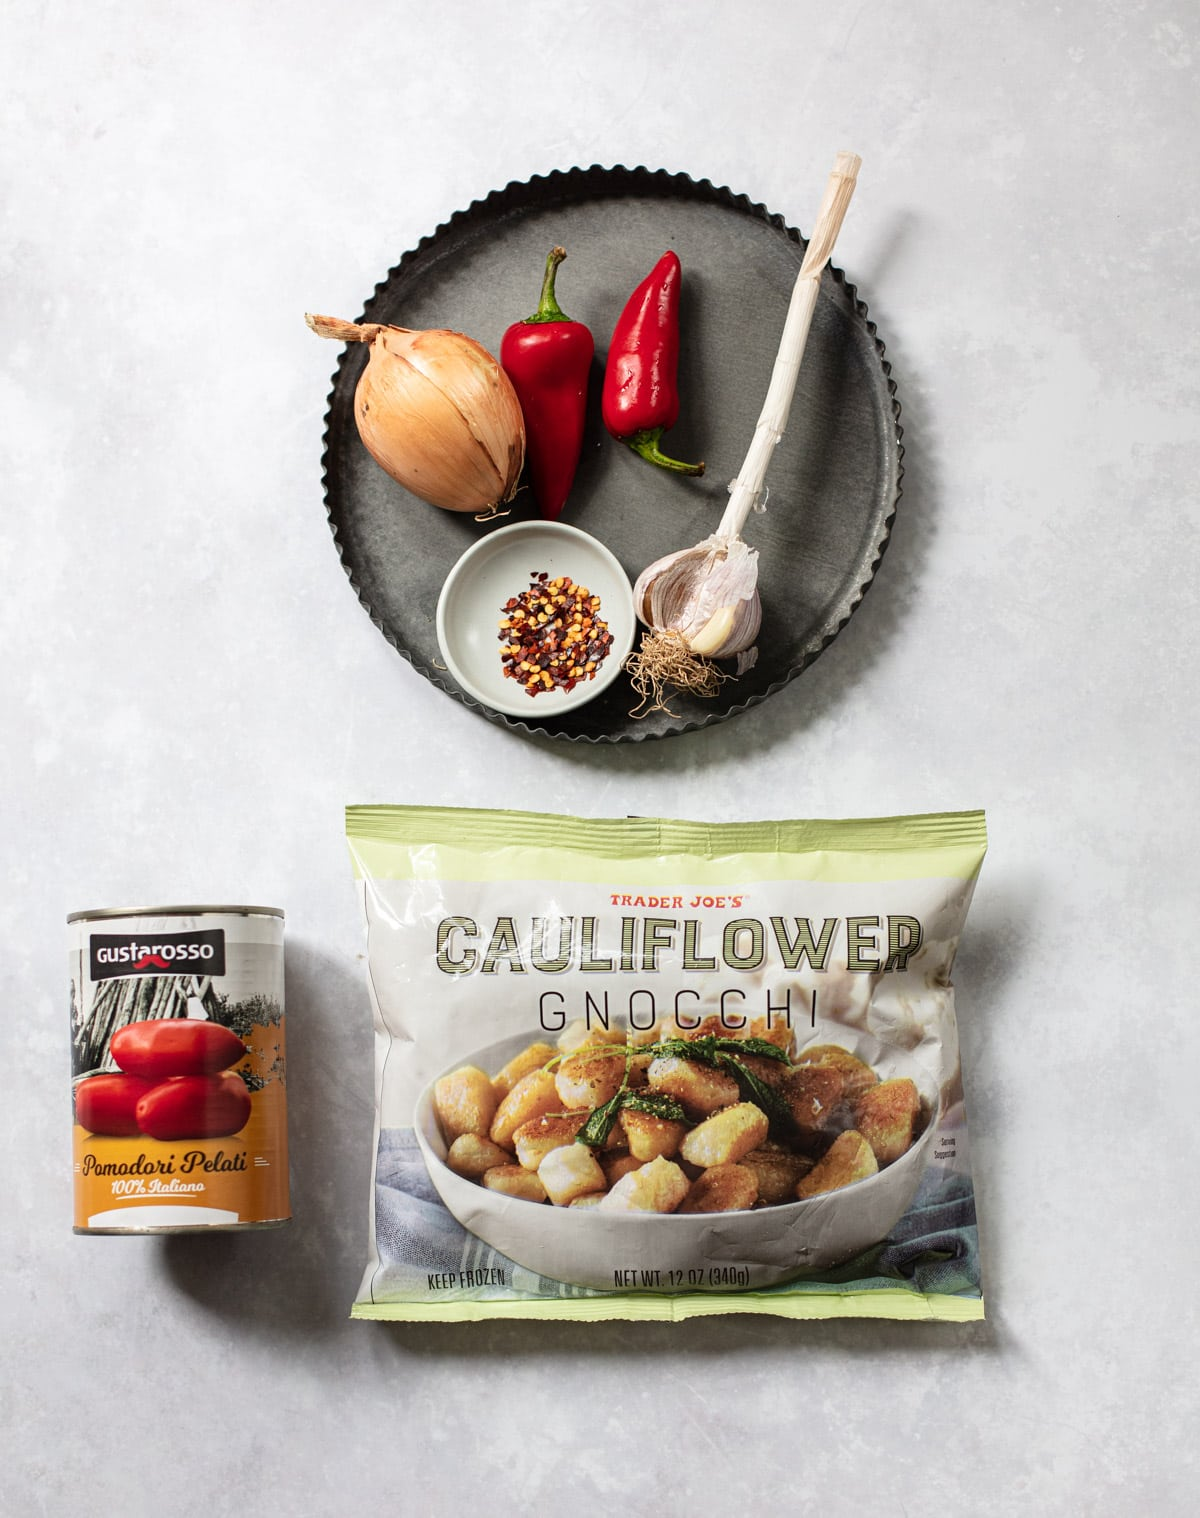 Trader Joe's Cauliflower Gnocchi Recipe Ingredients